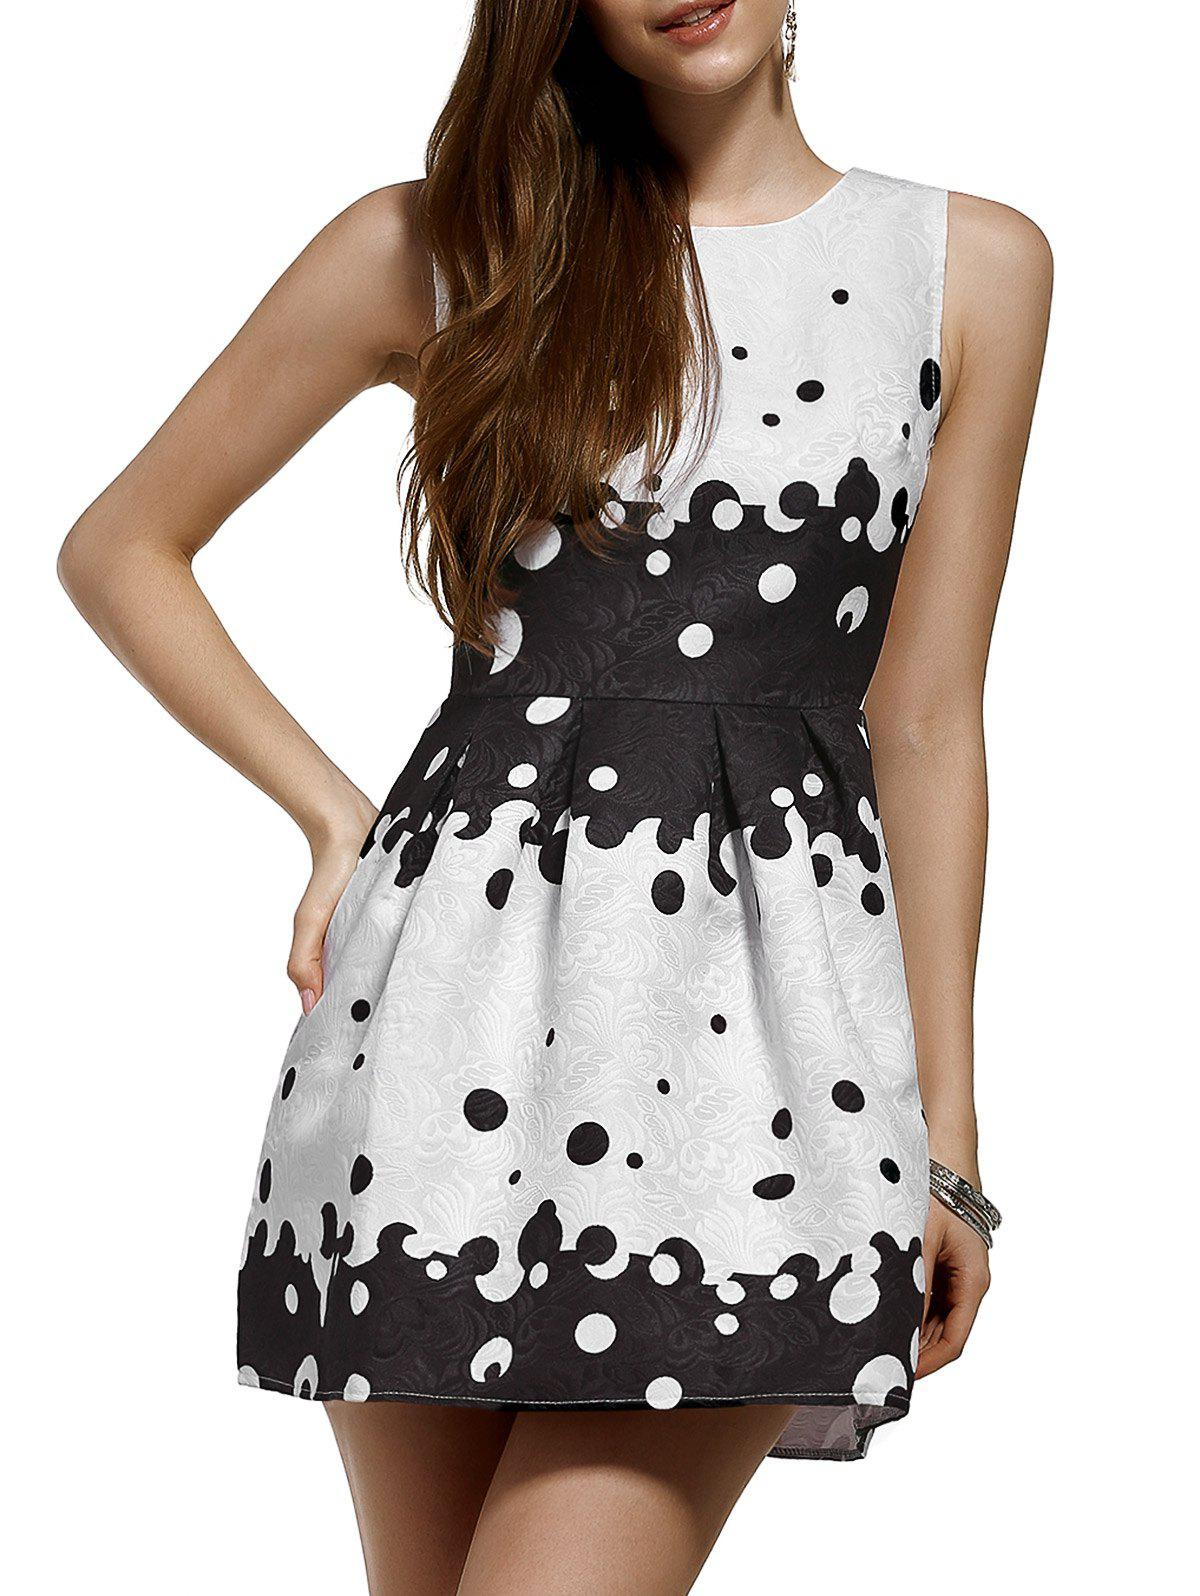 Trendy Jacquard Polka Dot Color Block Flare Dress - WHITE XL